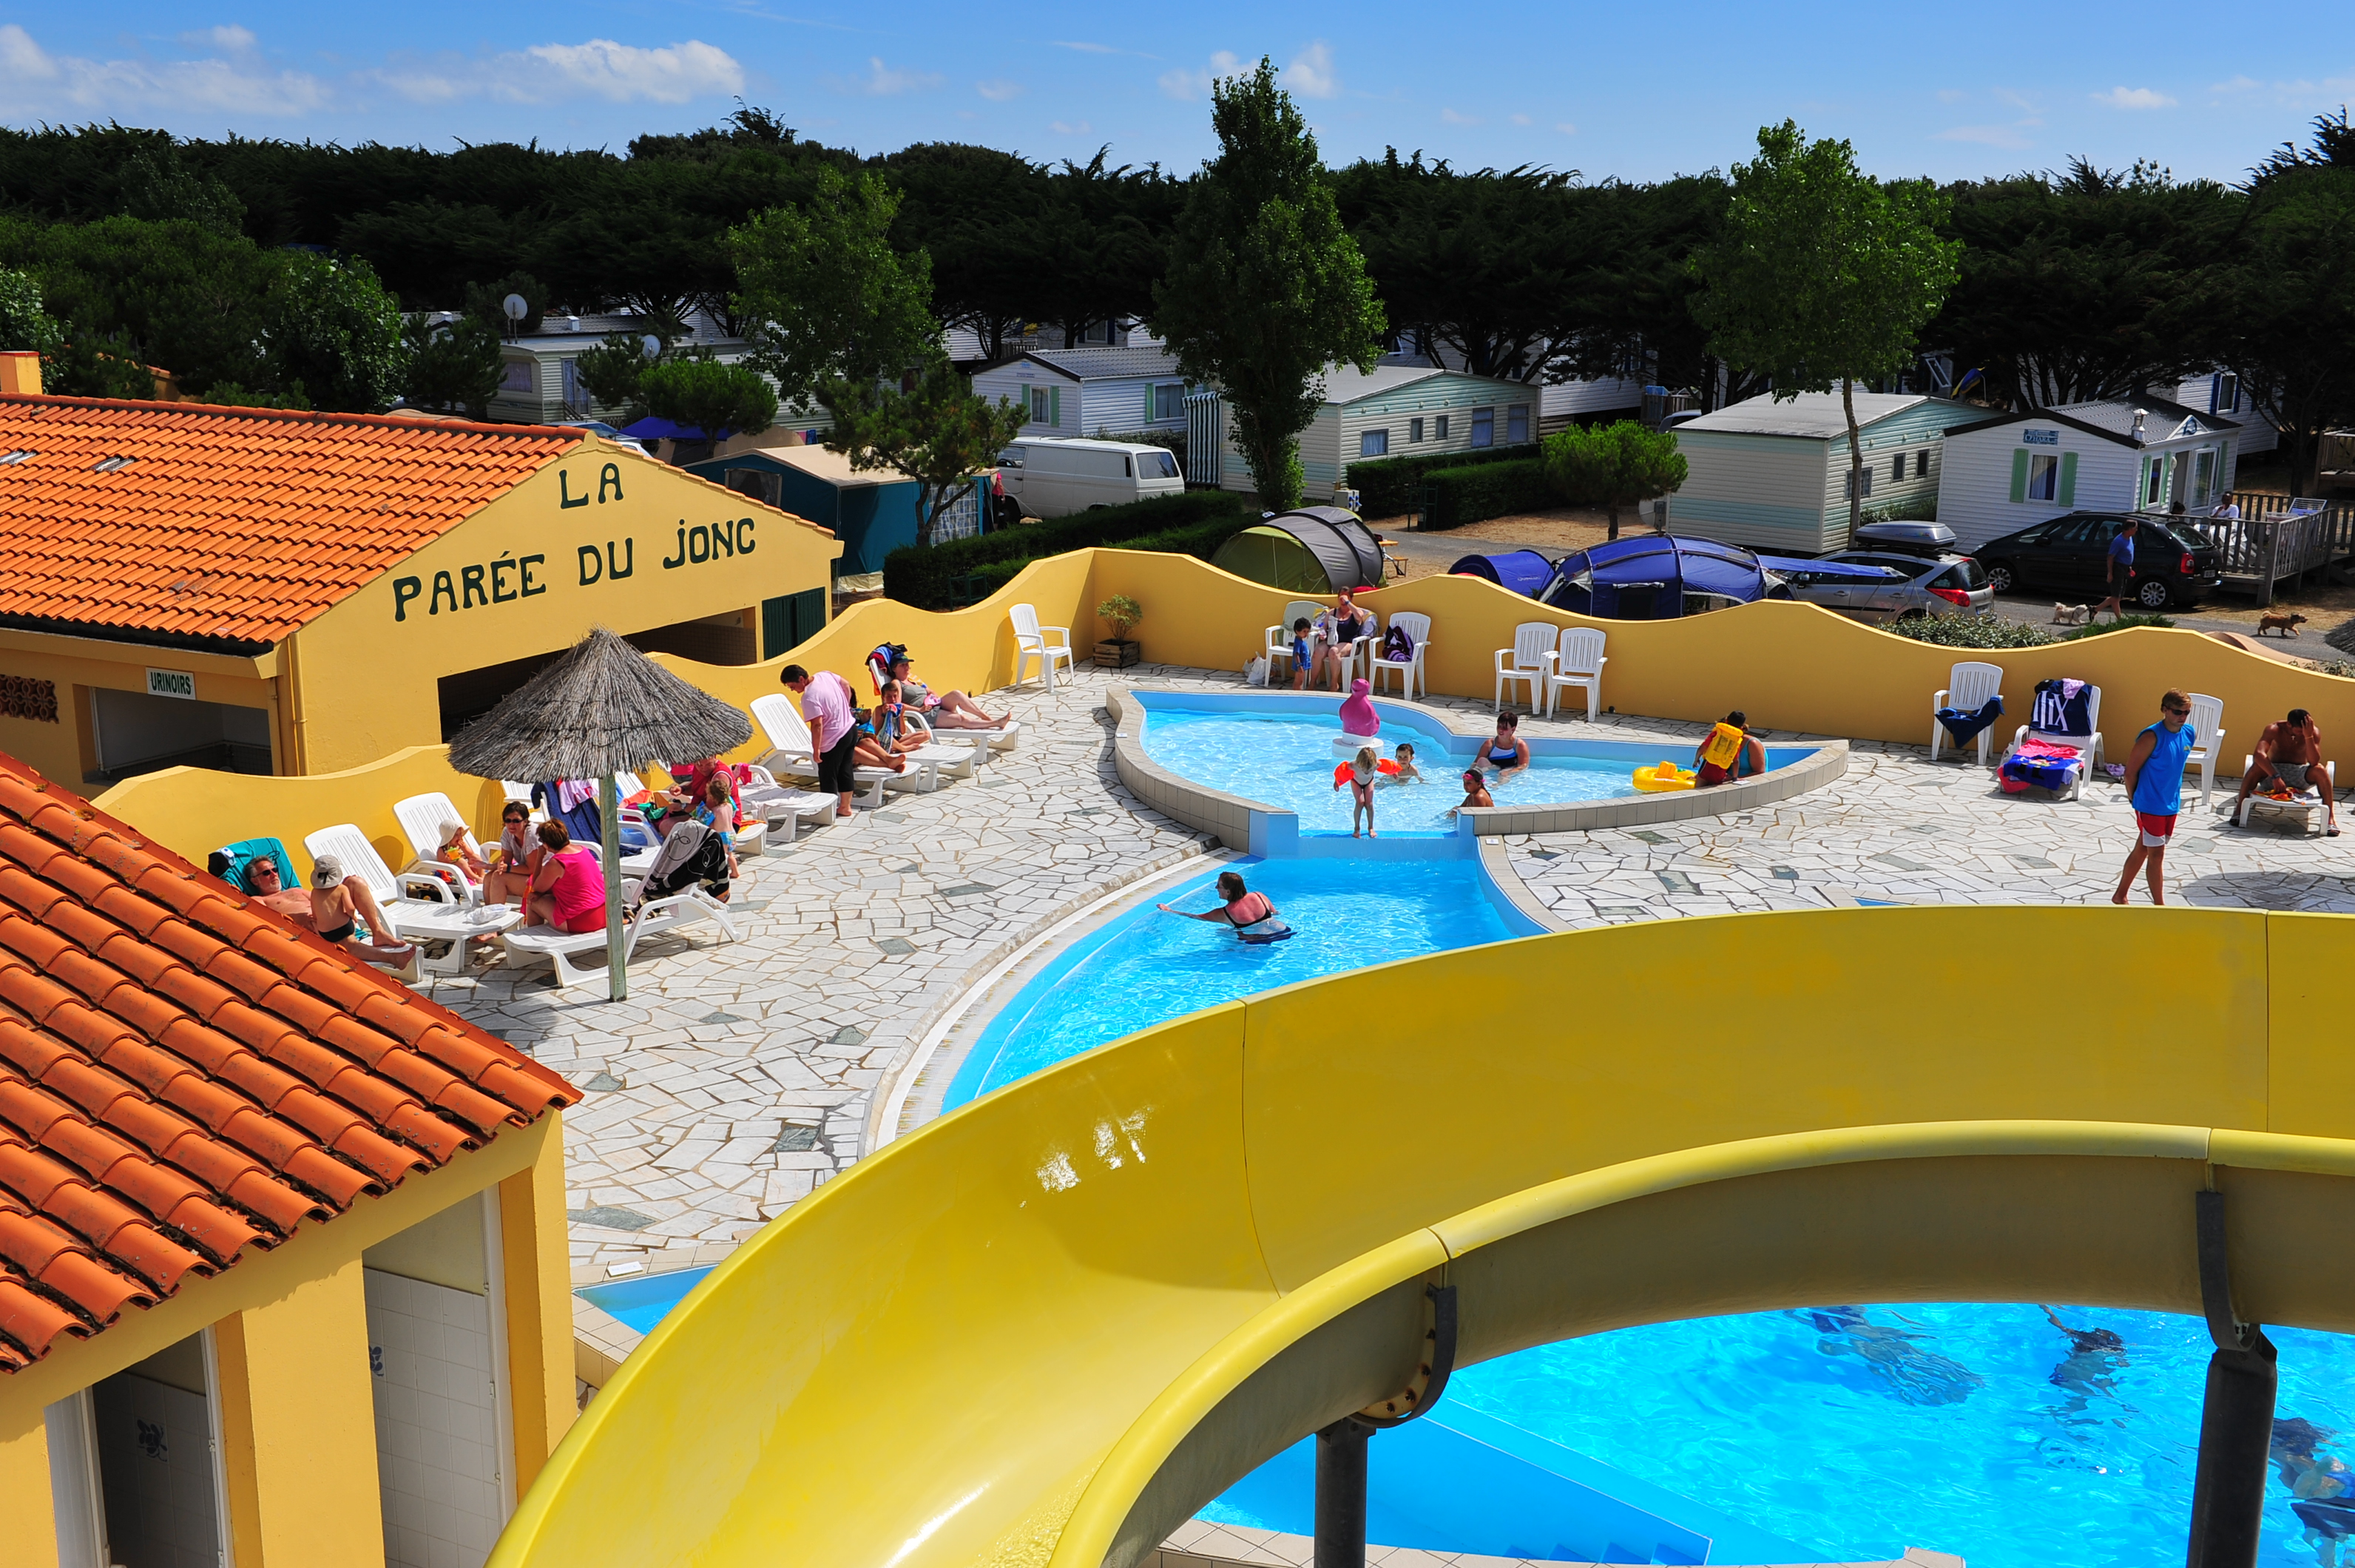 Camping la paree du jonc campground reviews deals for Camping sud france avec piscine